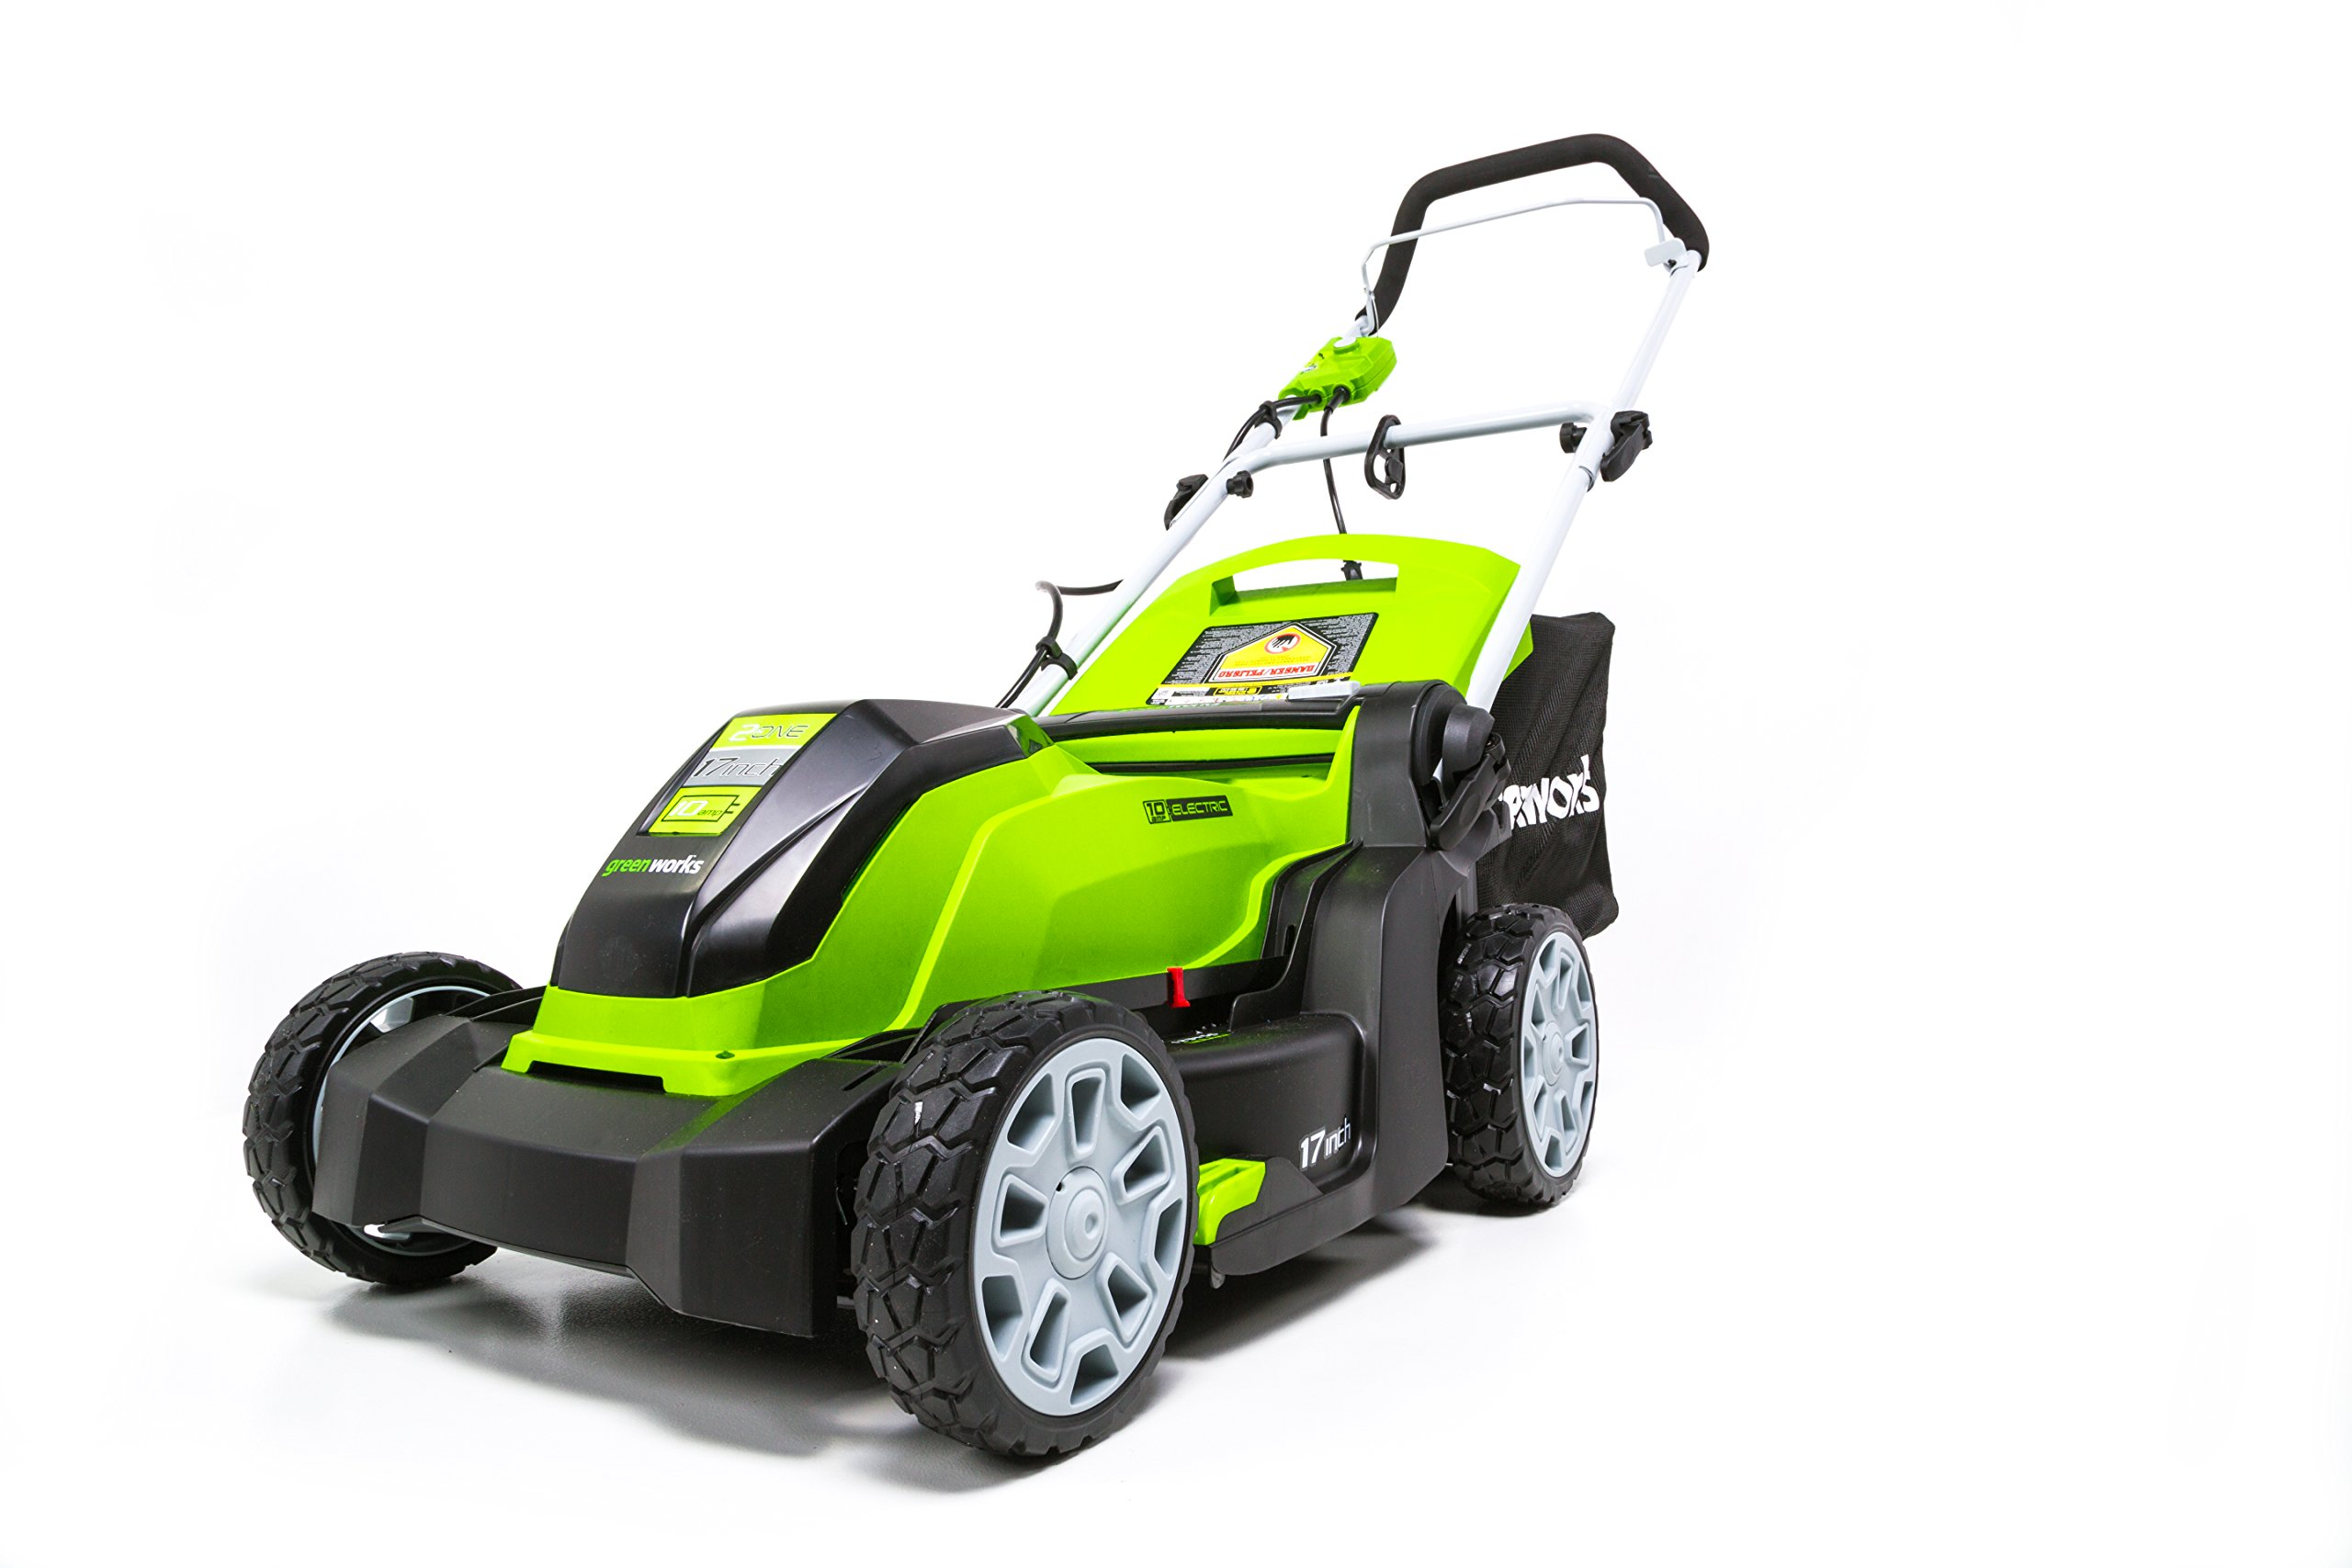 Greenworks 17-Inch 10 Amp Corded Lawn Mower MO10B00 by Greenworks